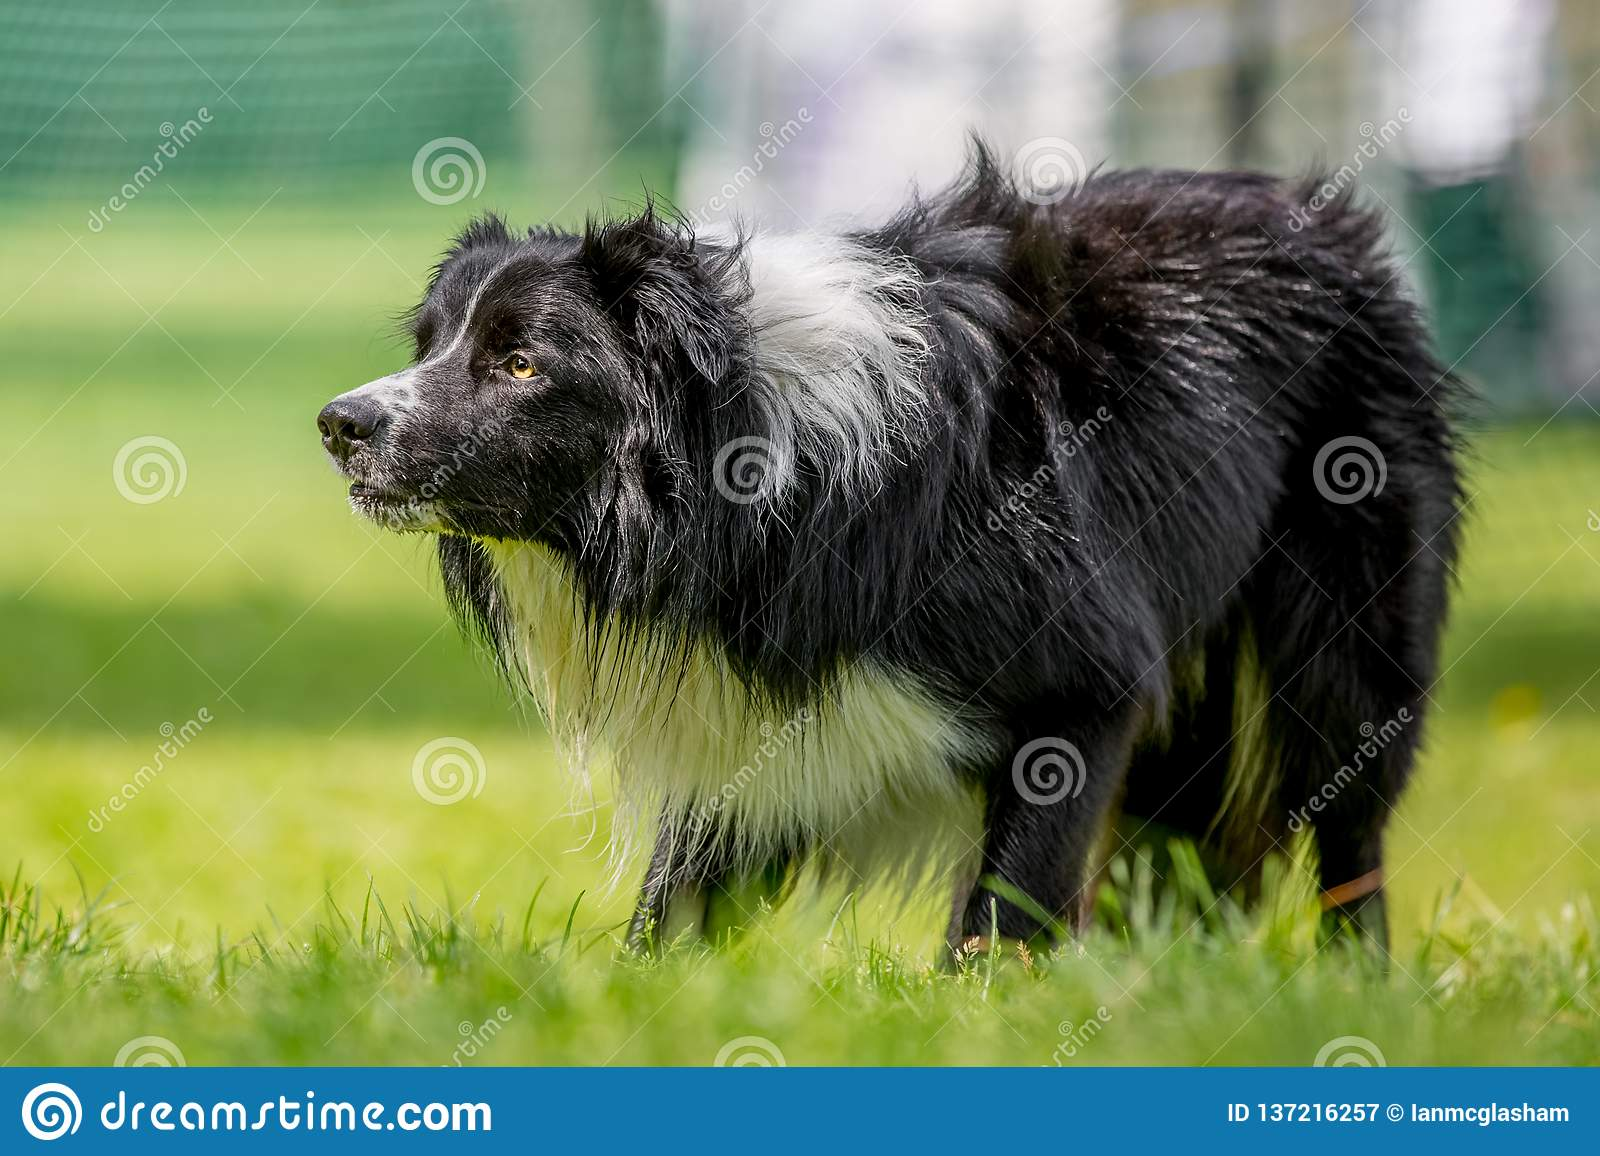 Border Collie sheepdog staring at something - maybe sheep on grass